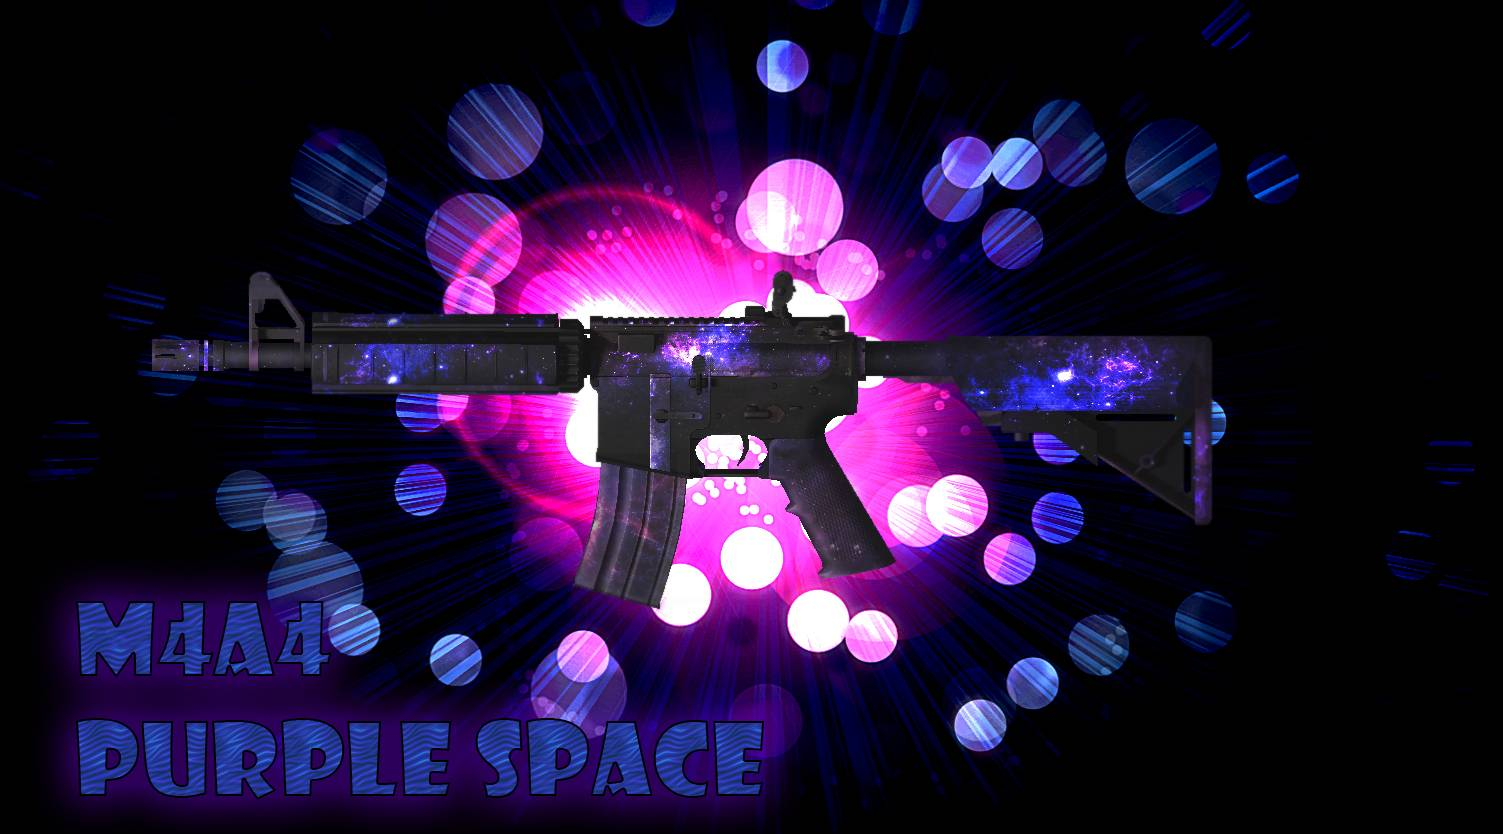 M4A4| Purple Space